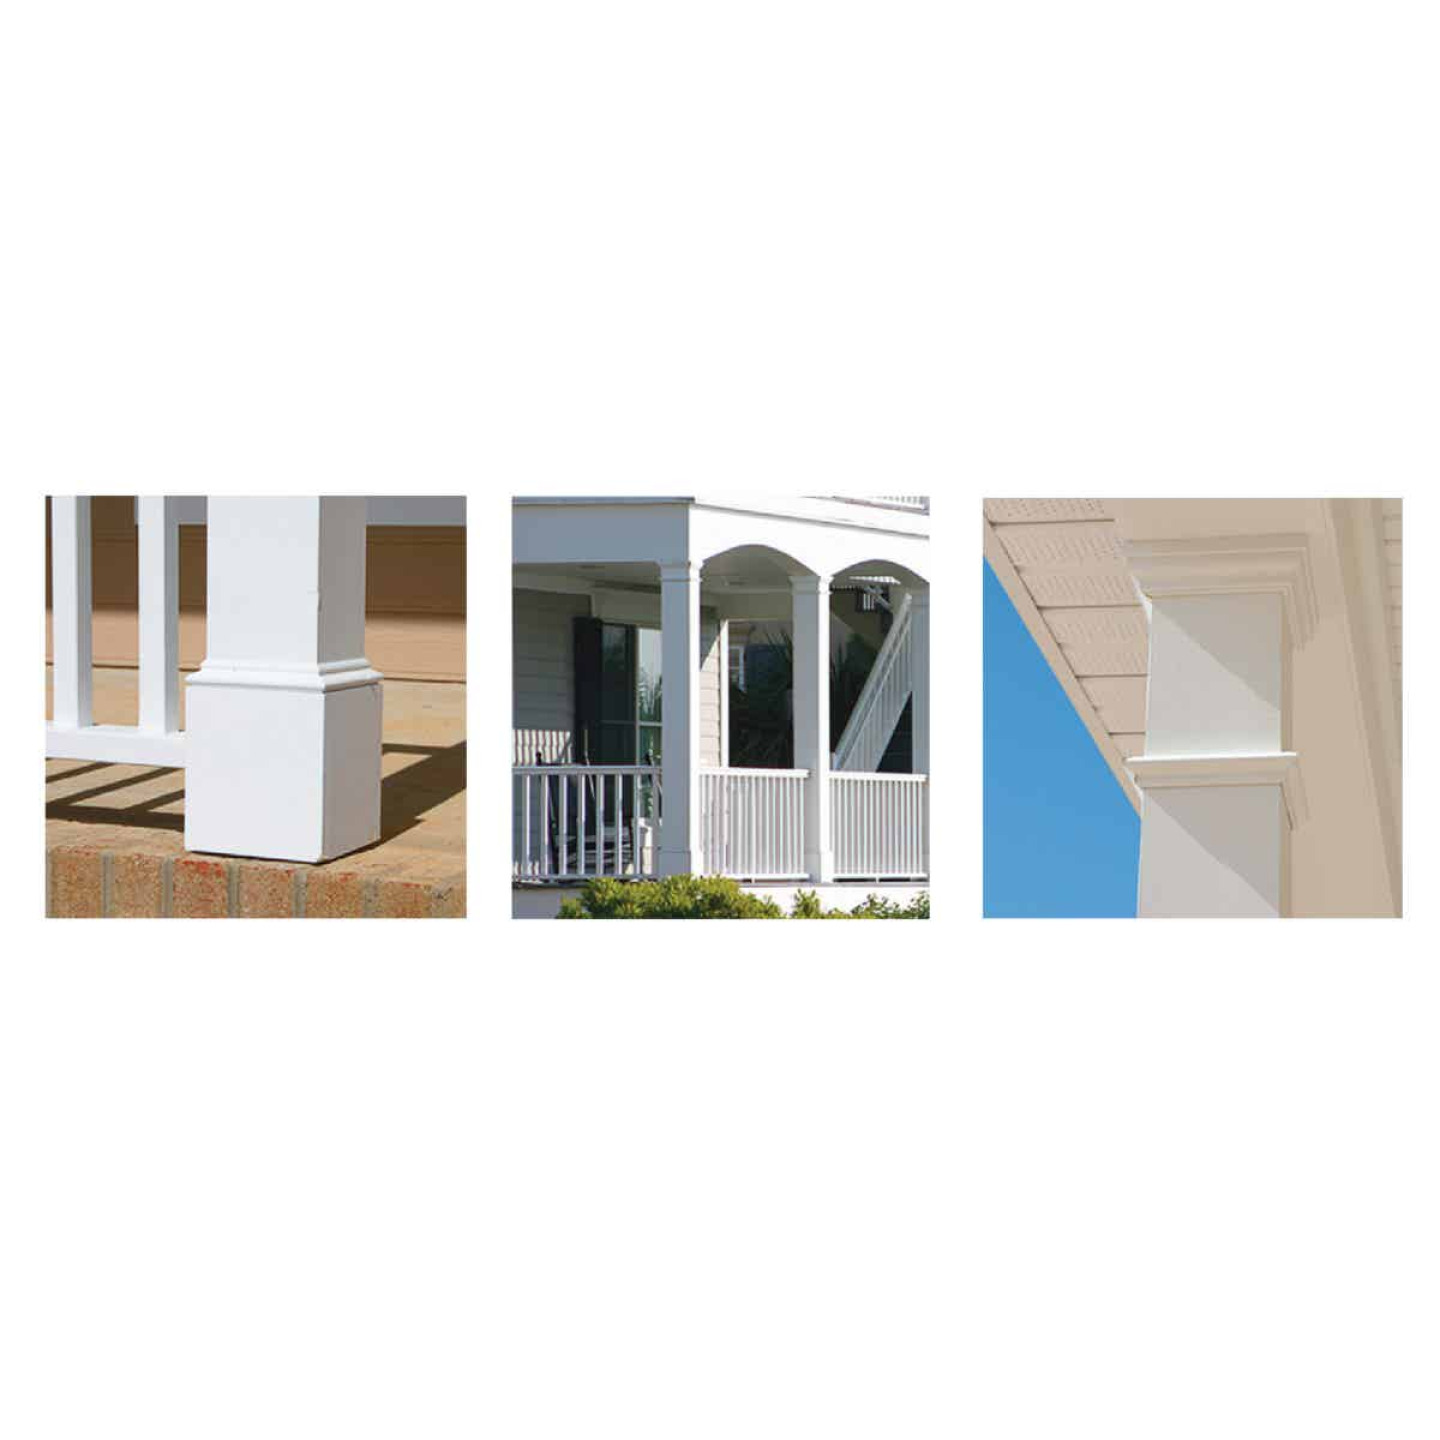 Crown Column DuraSnap 6 In. W x 6 In. H x 102 In. L White PVC Post Wrap Image 2